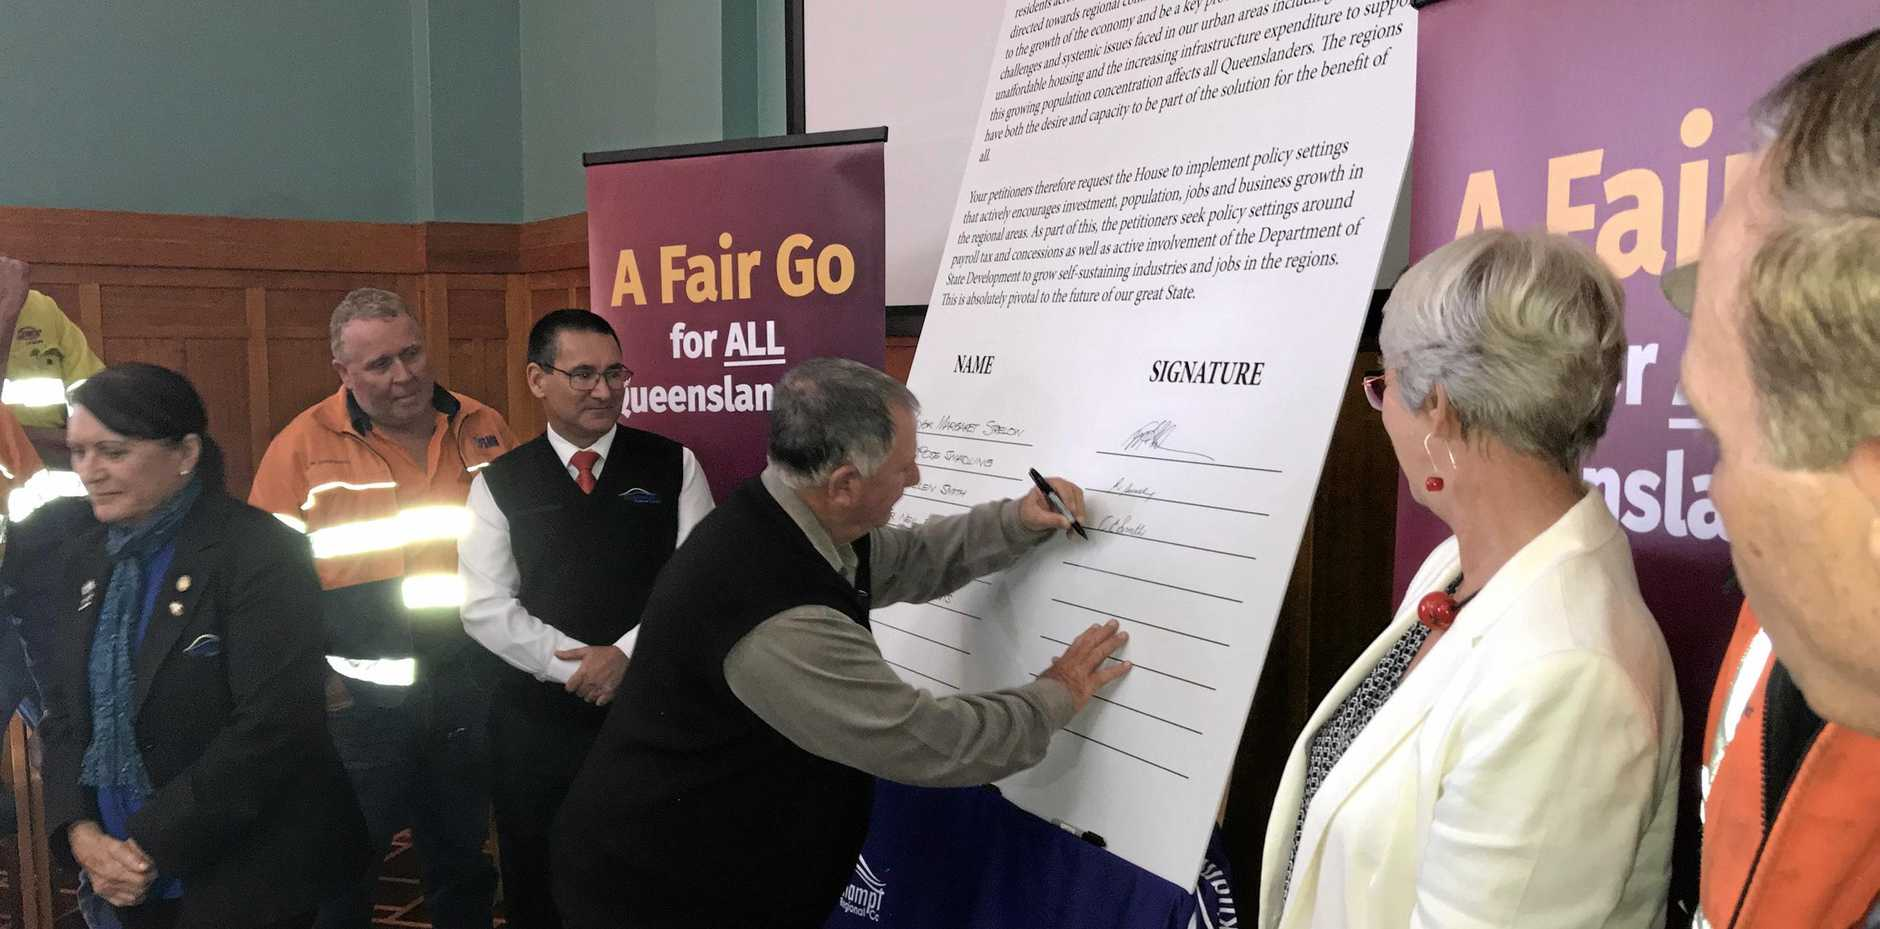 Cr Neil Fisher signing the petition